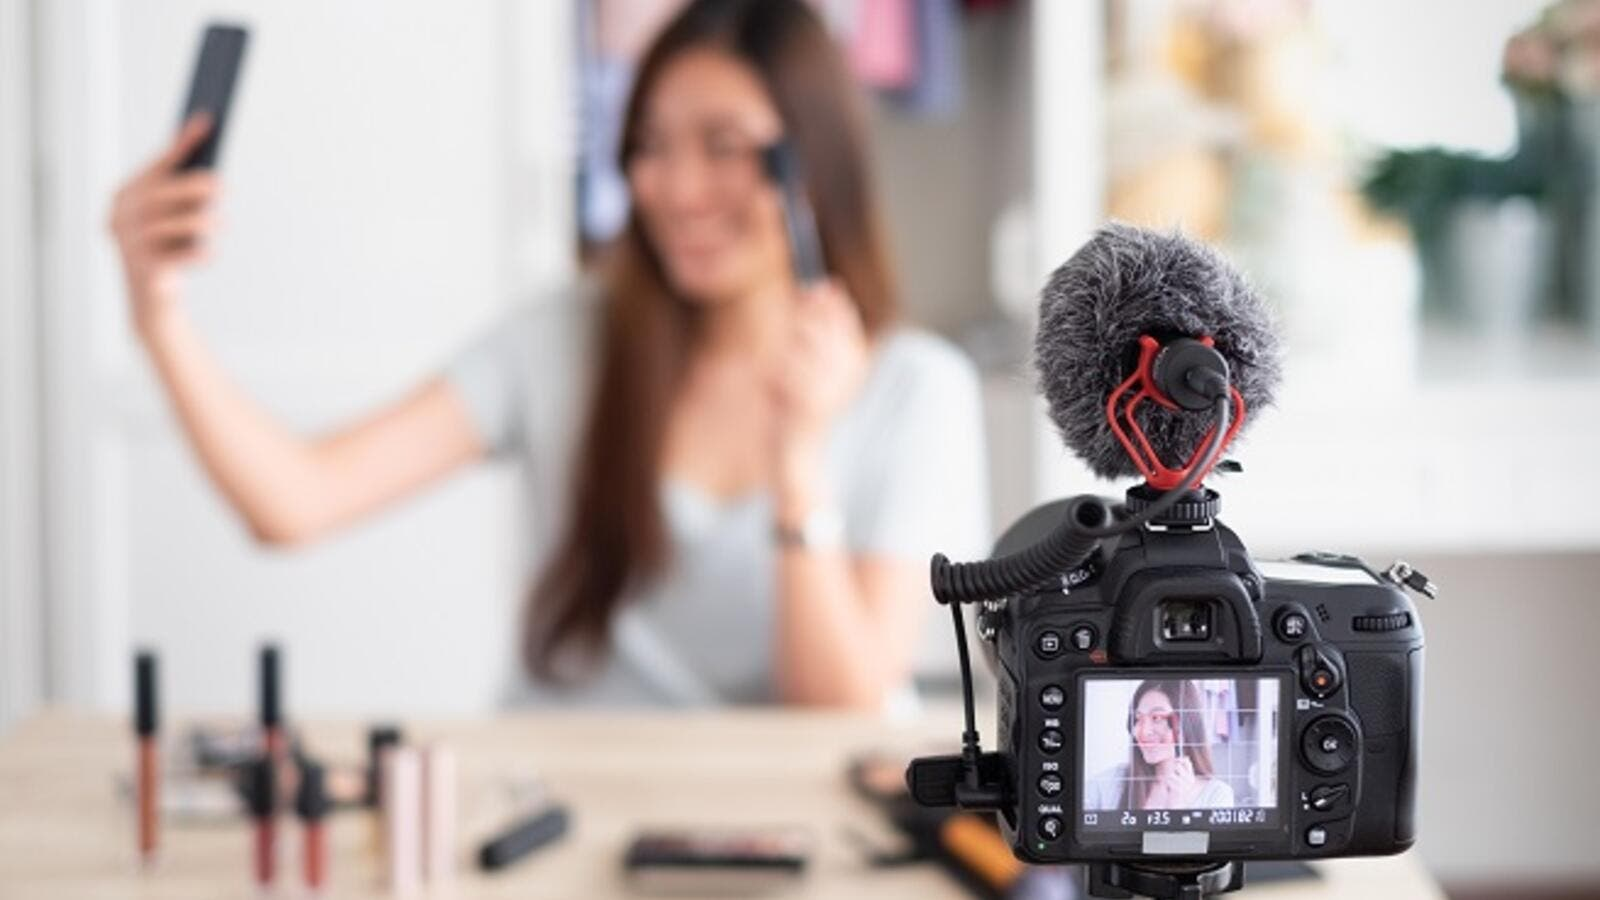 Brands are increasingly using influencers as their ambassadors and banking on them to make their products popular with the target audience with a fair degree of success. (Shutterstock)